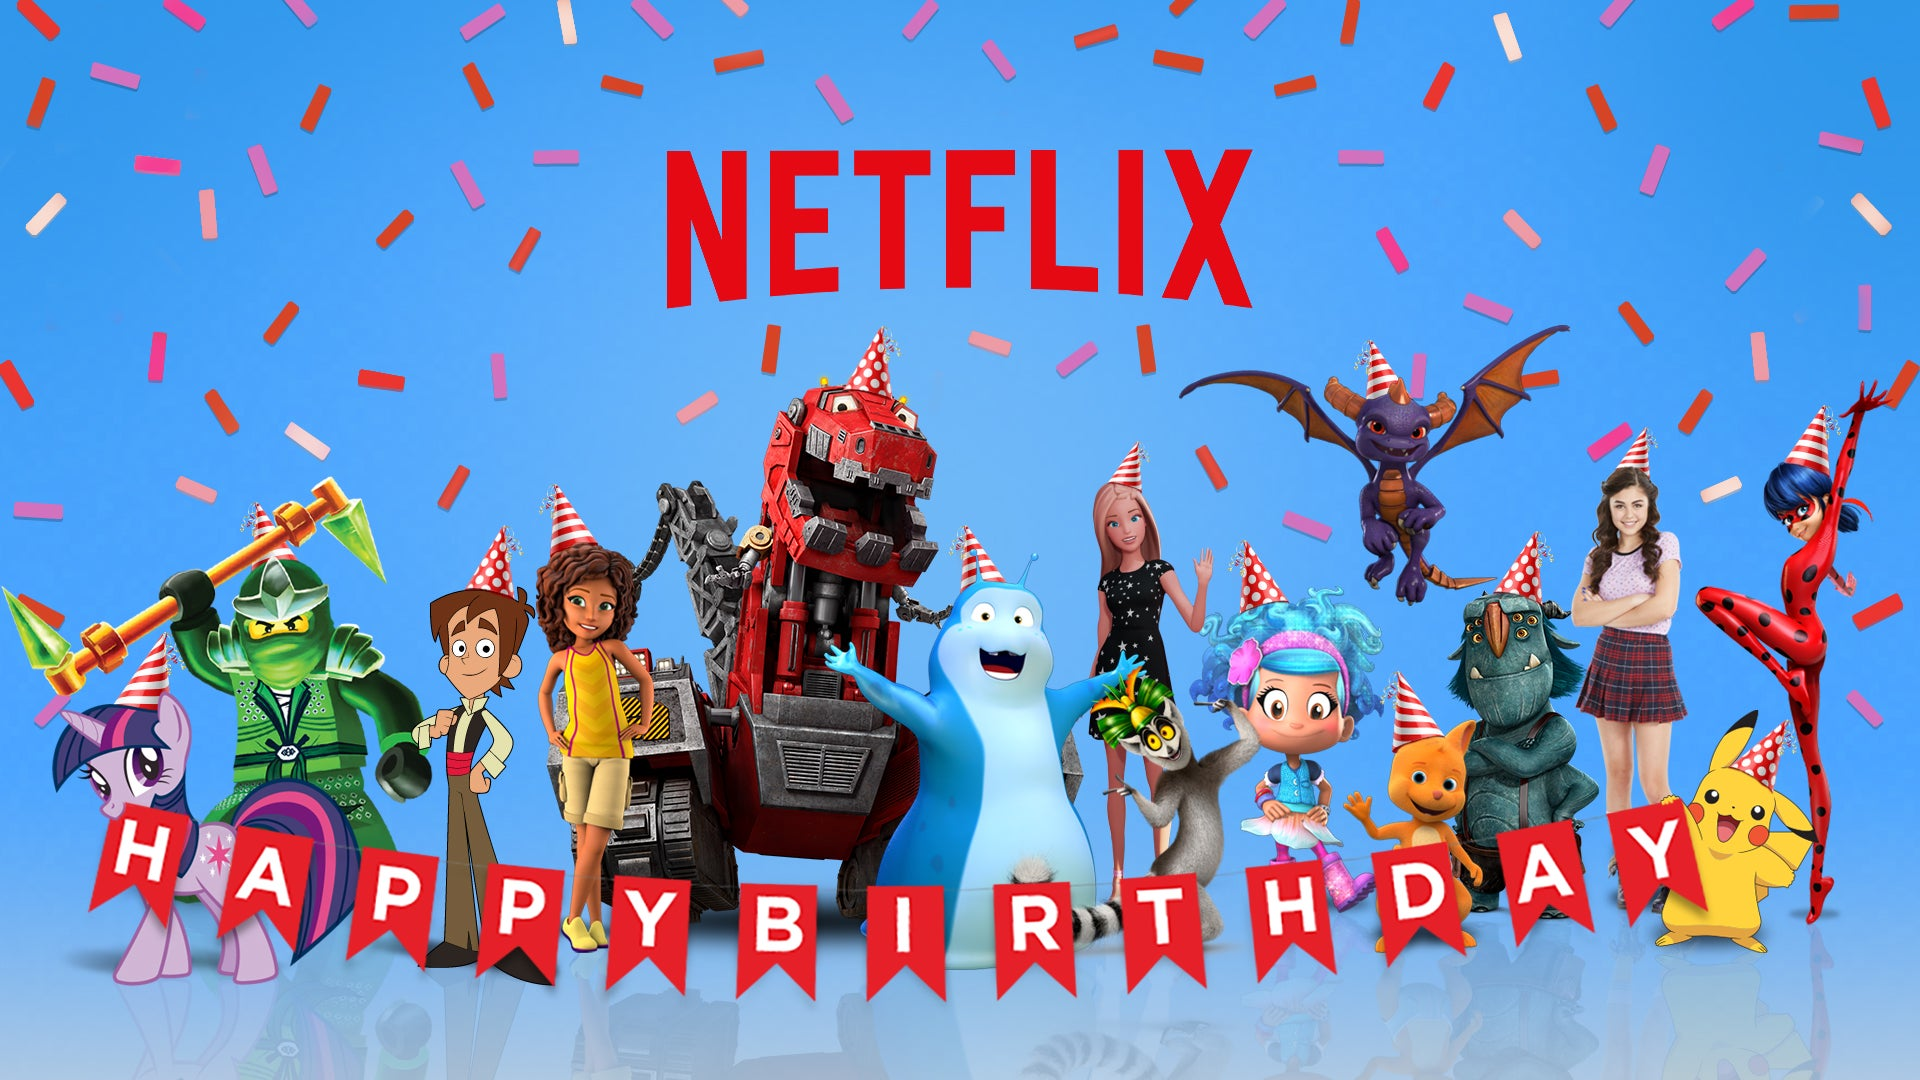 Get Your Kid A Birthday Greeting From Barbie Or Pokemon With Netflix's 'Birthdays On Demand'